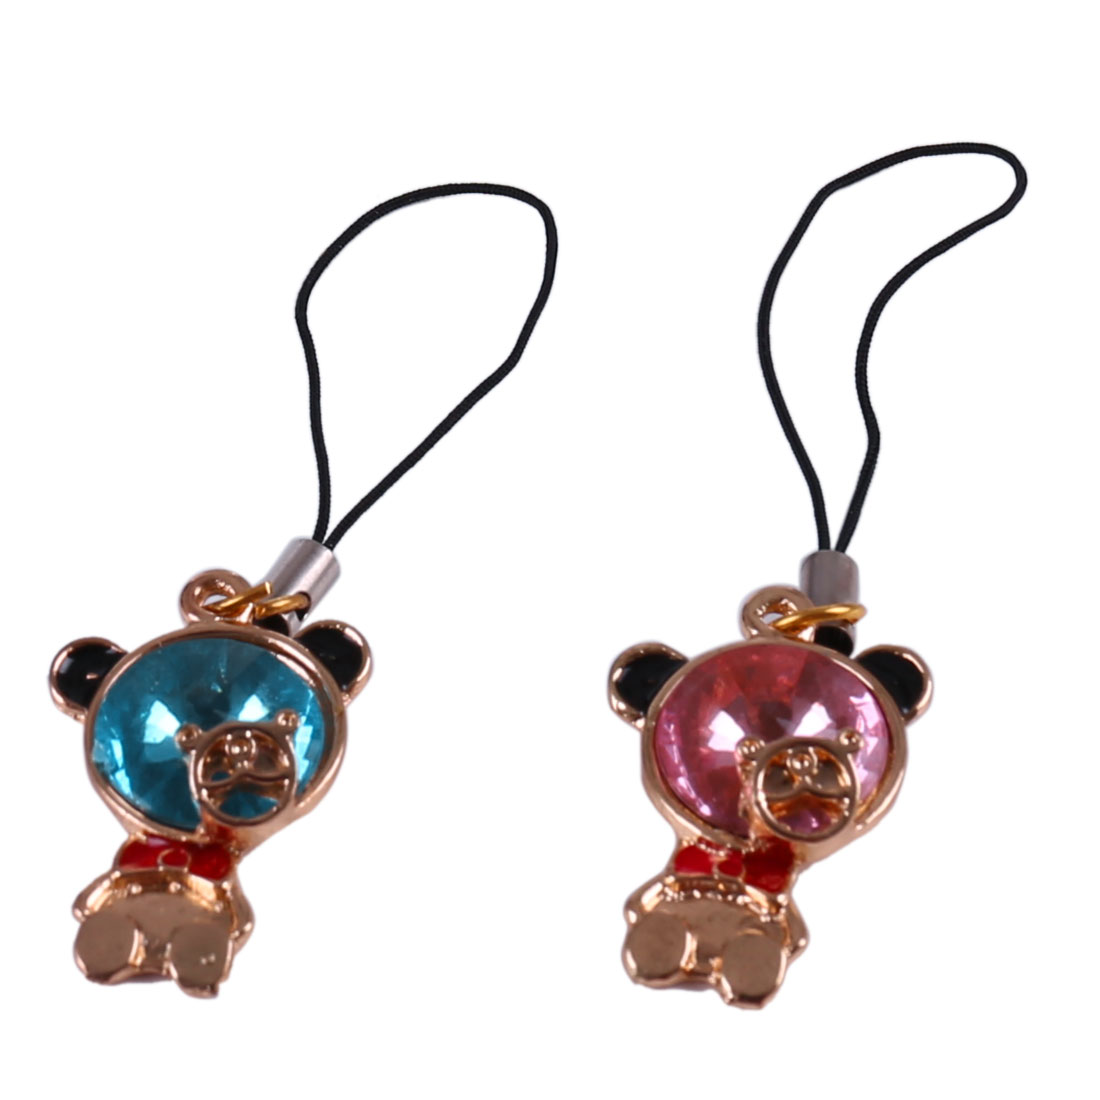 Lovers Plastic Crystal Inlaid Bear Pendant Cell Phone Charms